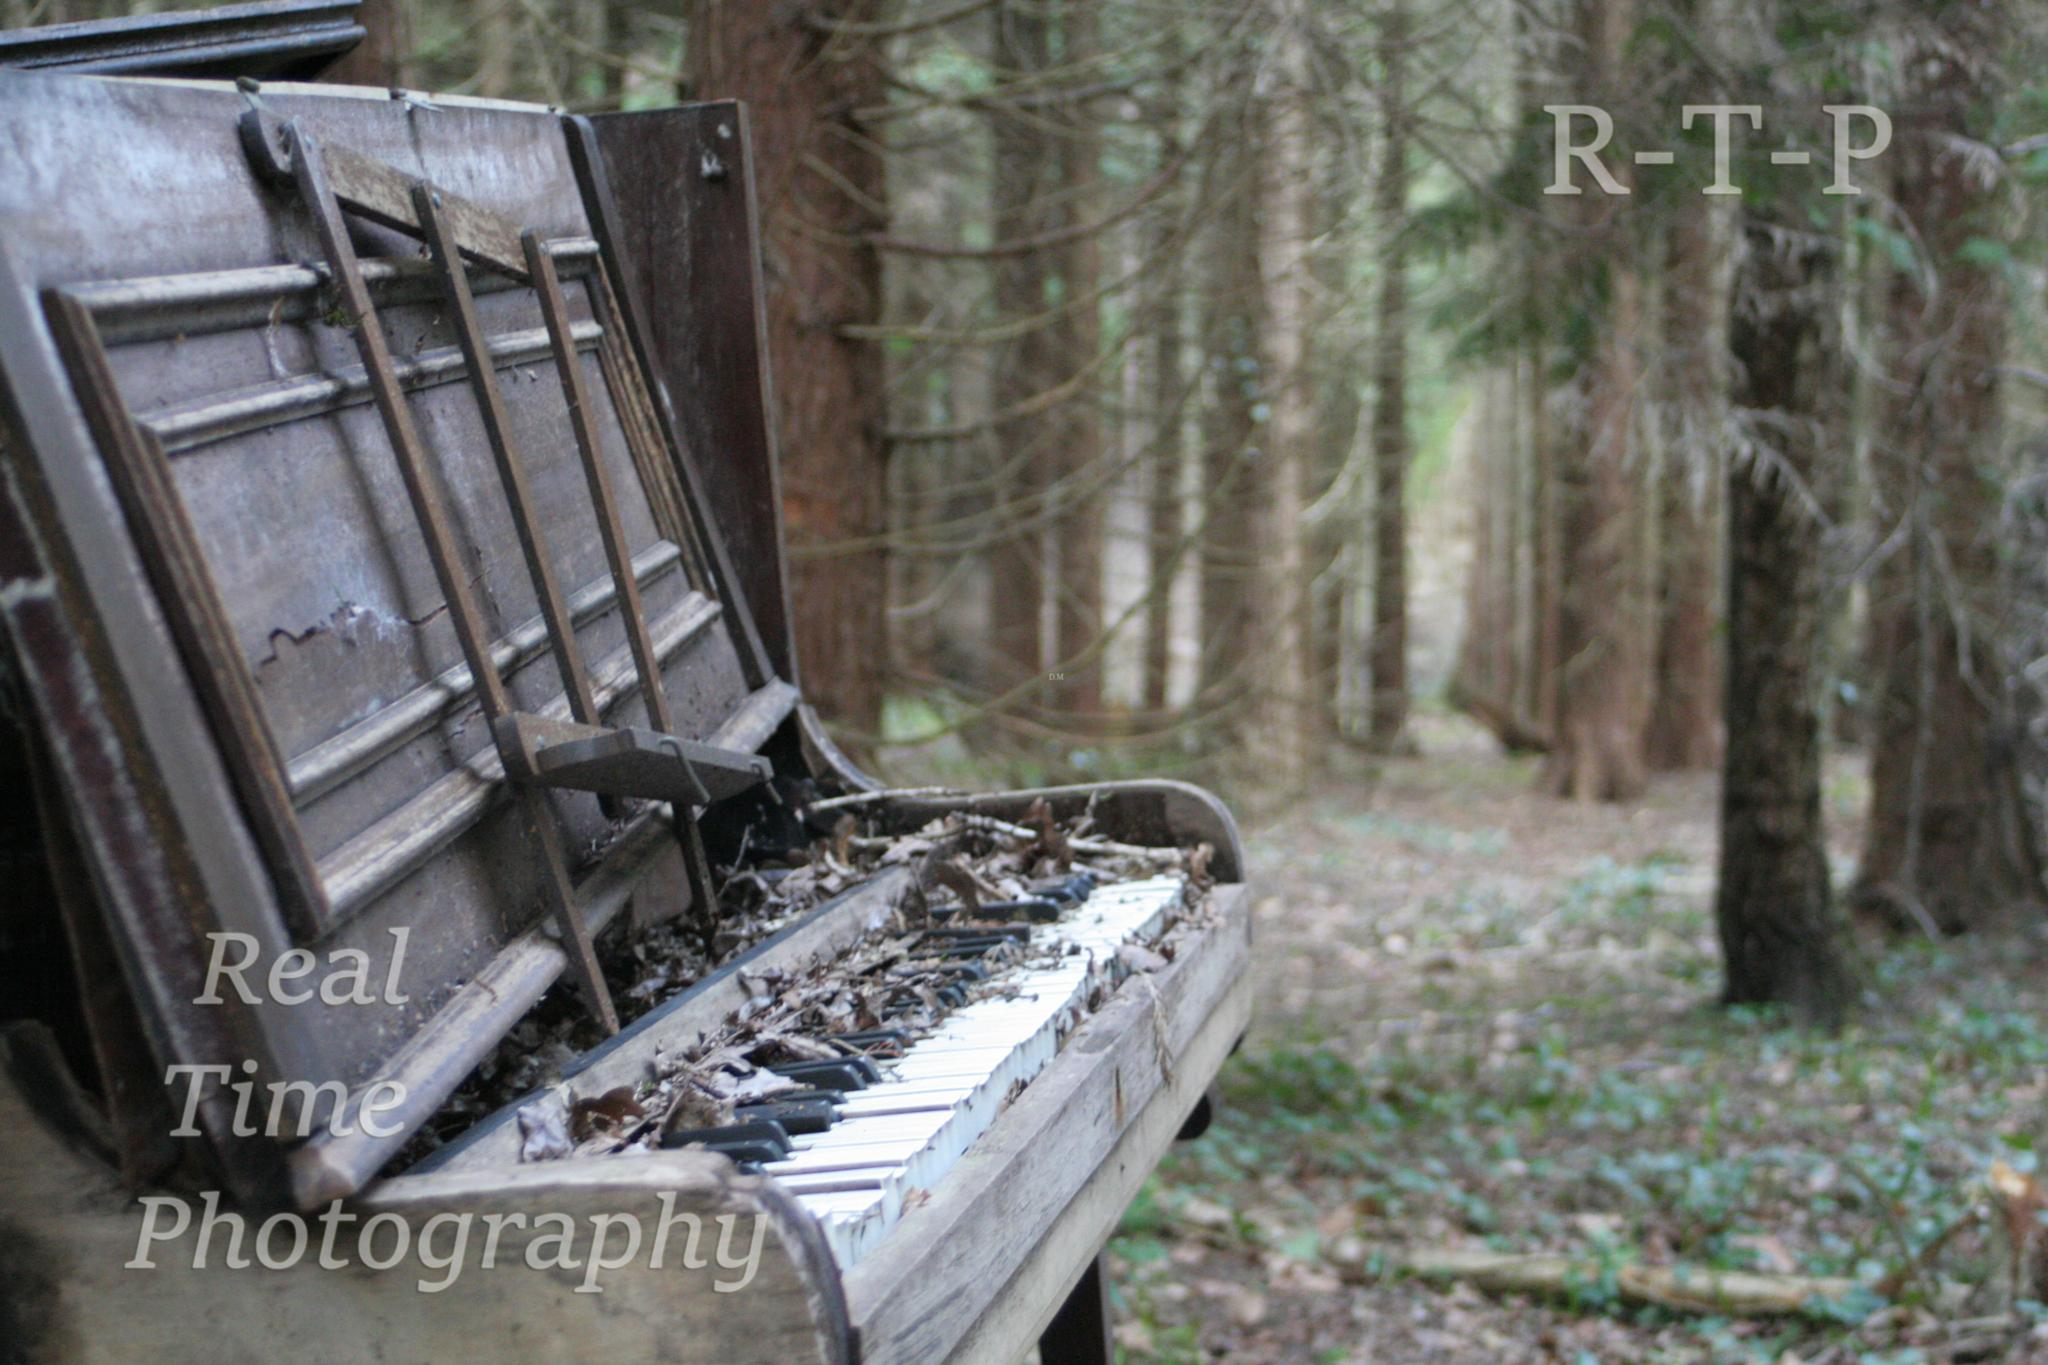 Piano in the woods by Daryl Marlow